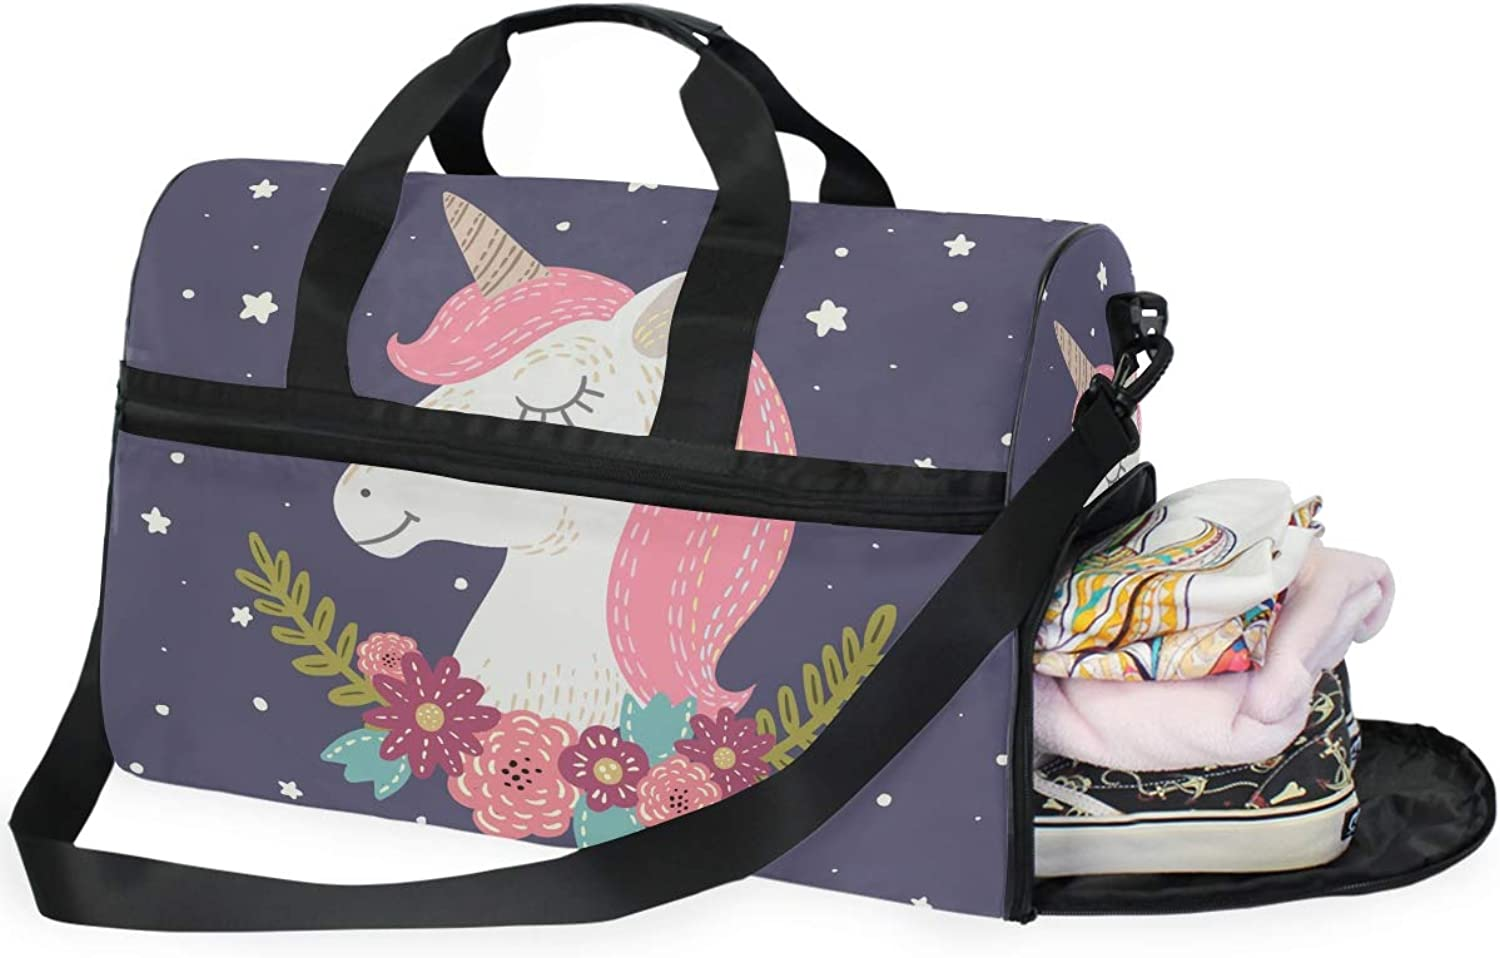 f1f76ef04f9a61 Unicorn Flower Sports Gym Bag with shoes Compartment Travel Duffel Bag for  Men and Women